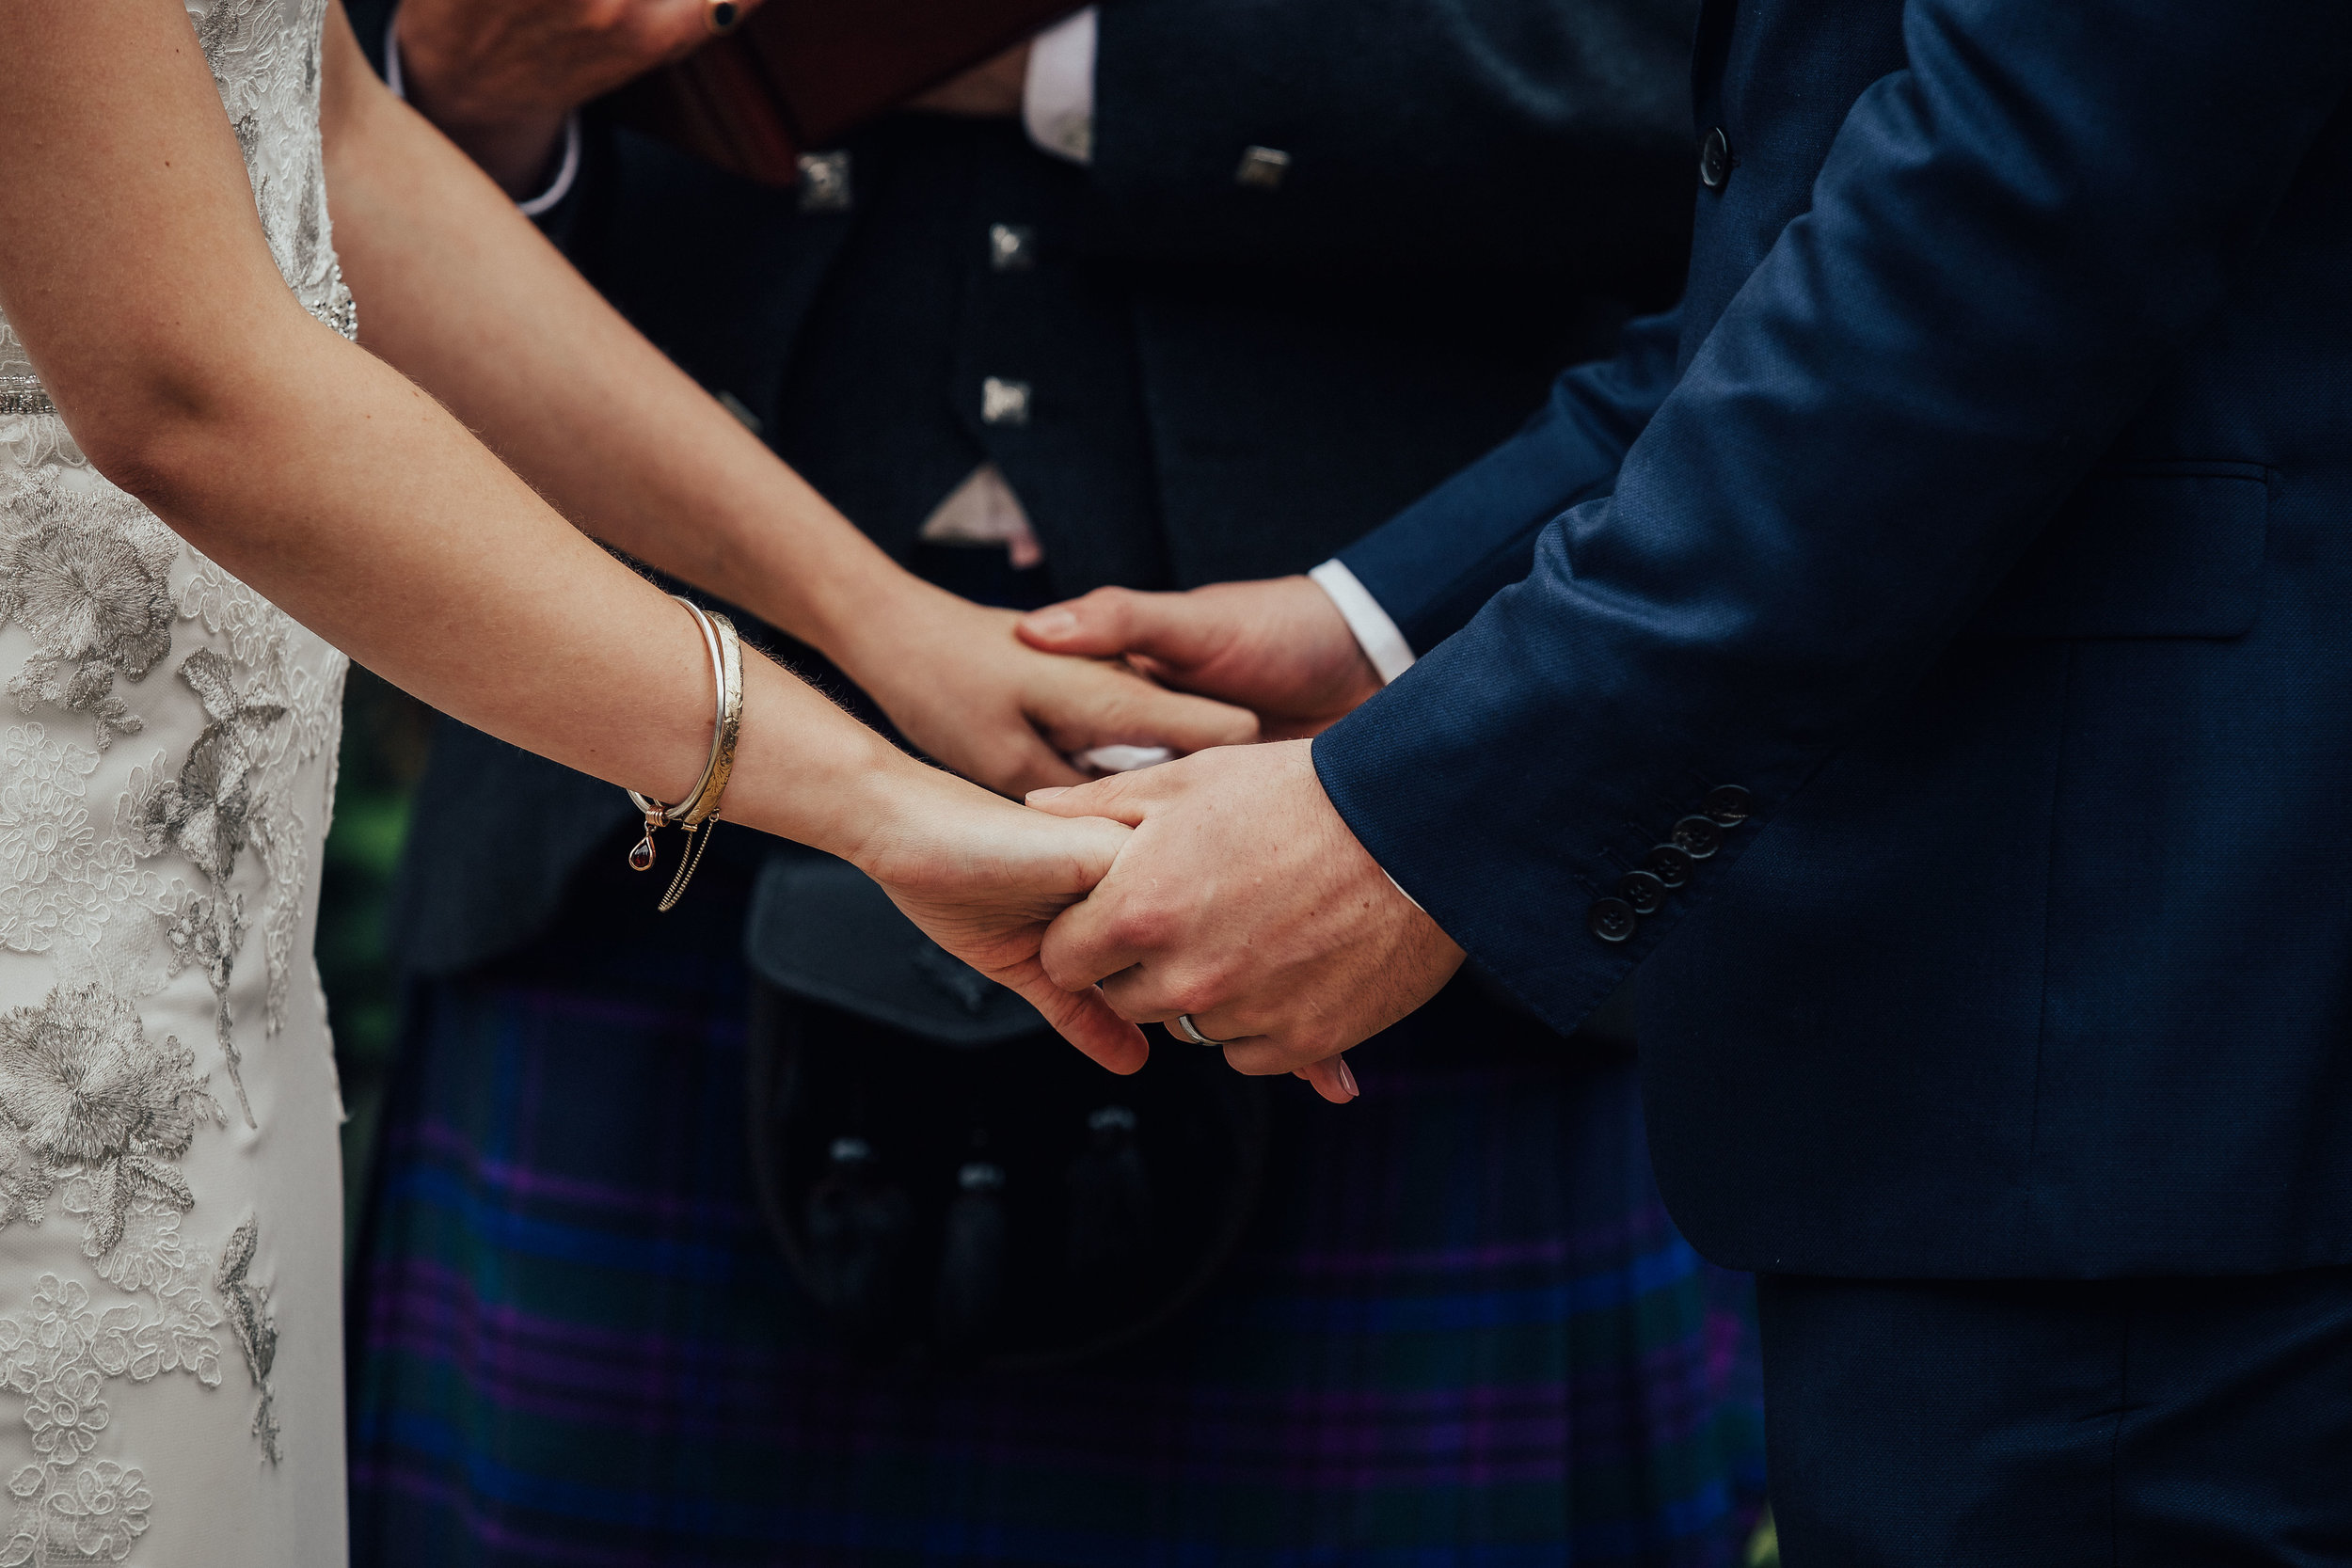 PJ_PHILLIPS_PHOTOGRAPHY_EDINBURGH_WEDDERBURN_BARNS_WEDDING_EDINBURGH_WEDDING_PHOTOGRAPHER_73.jpg